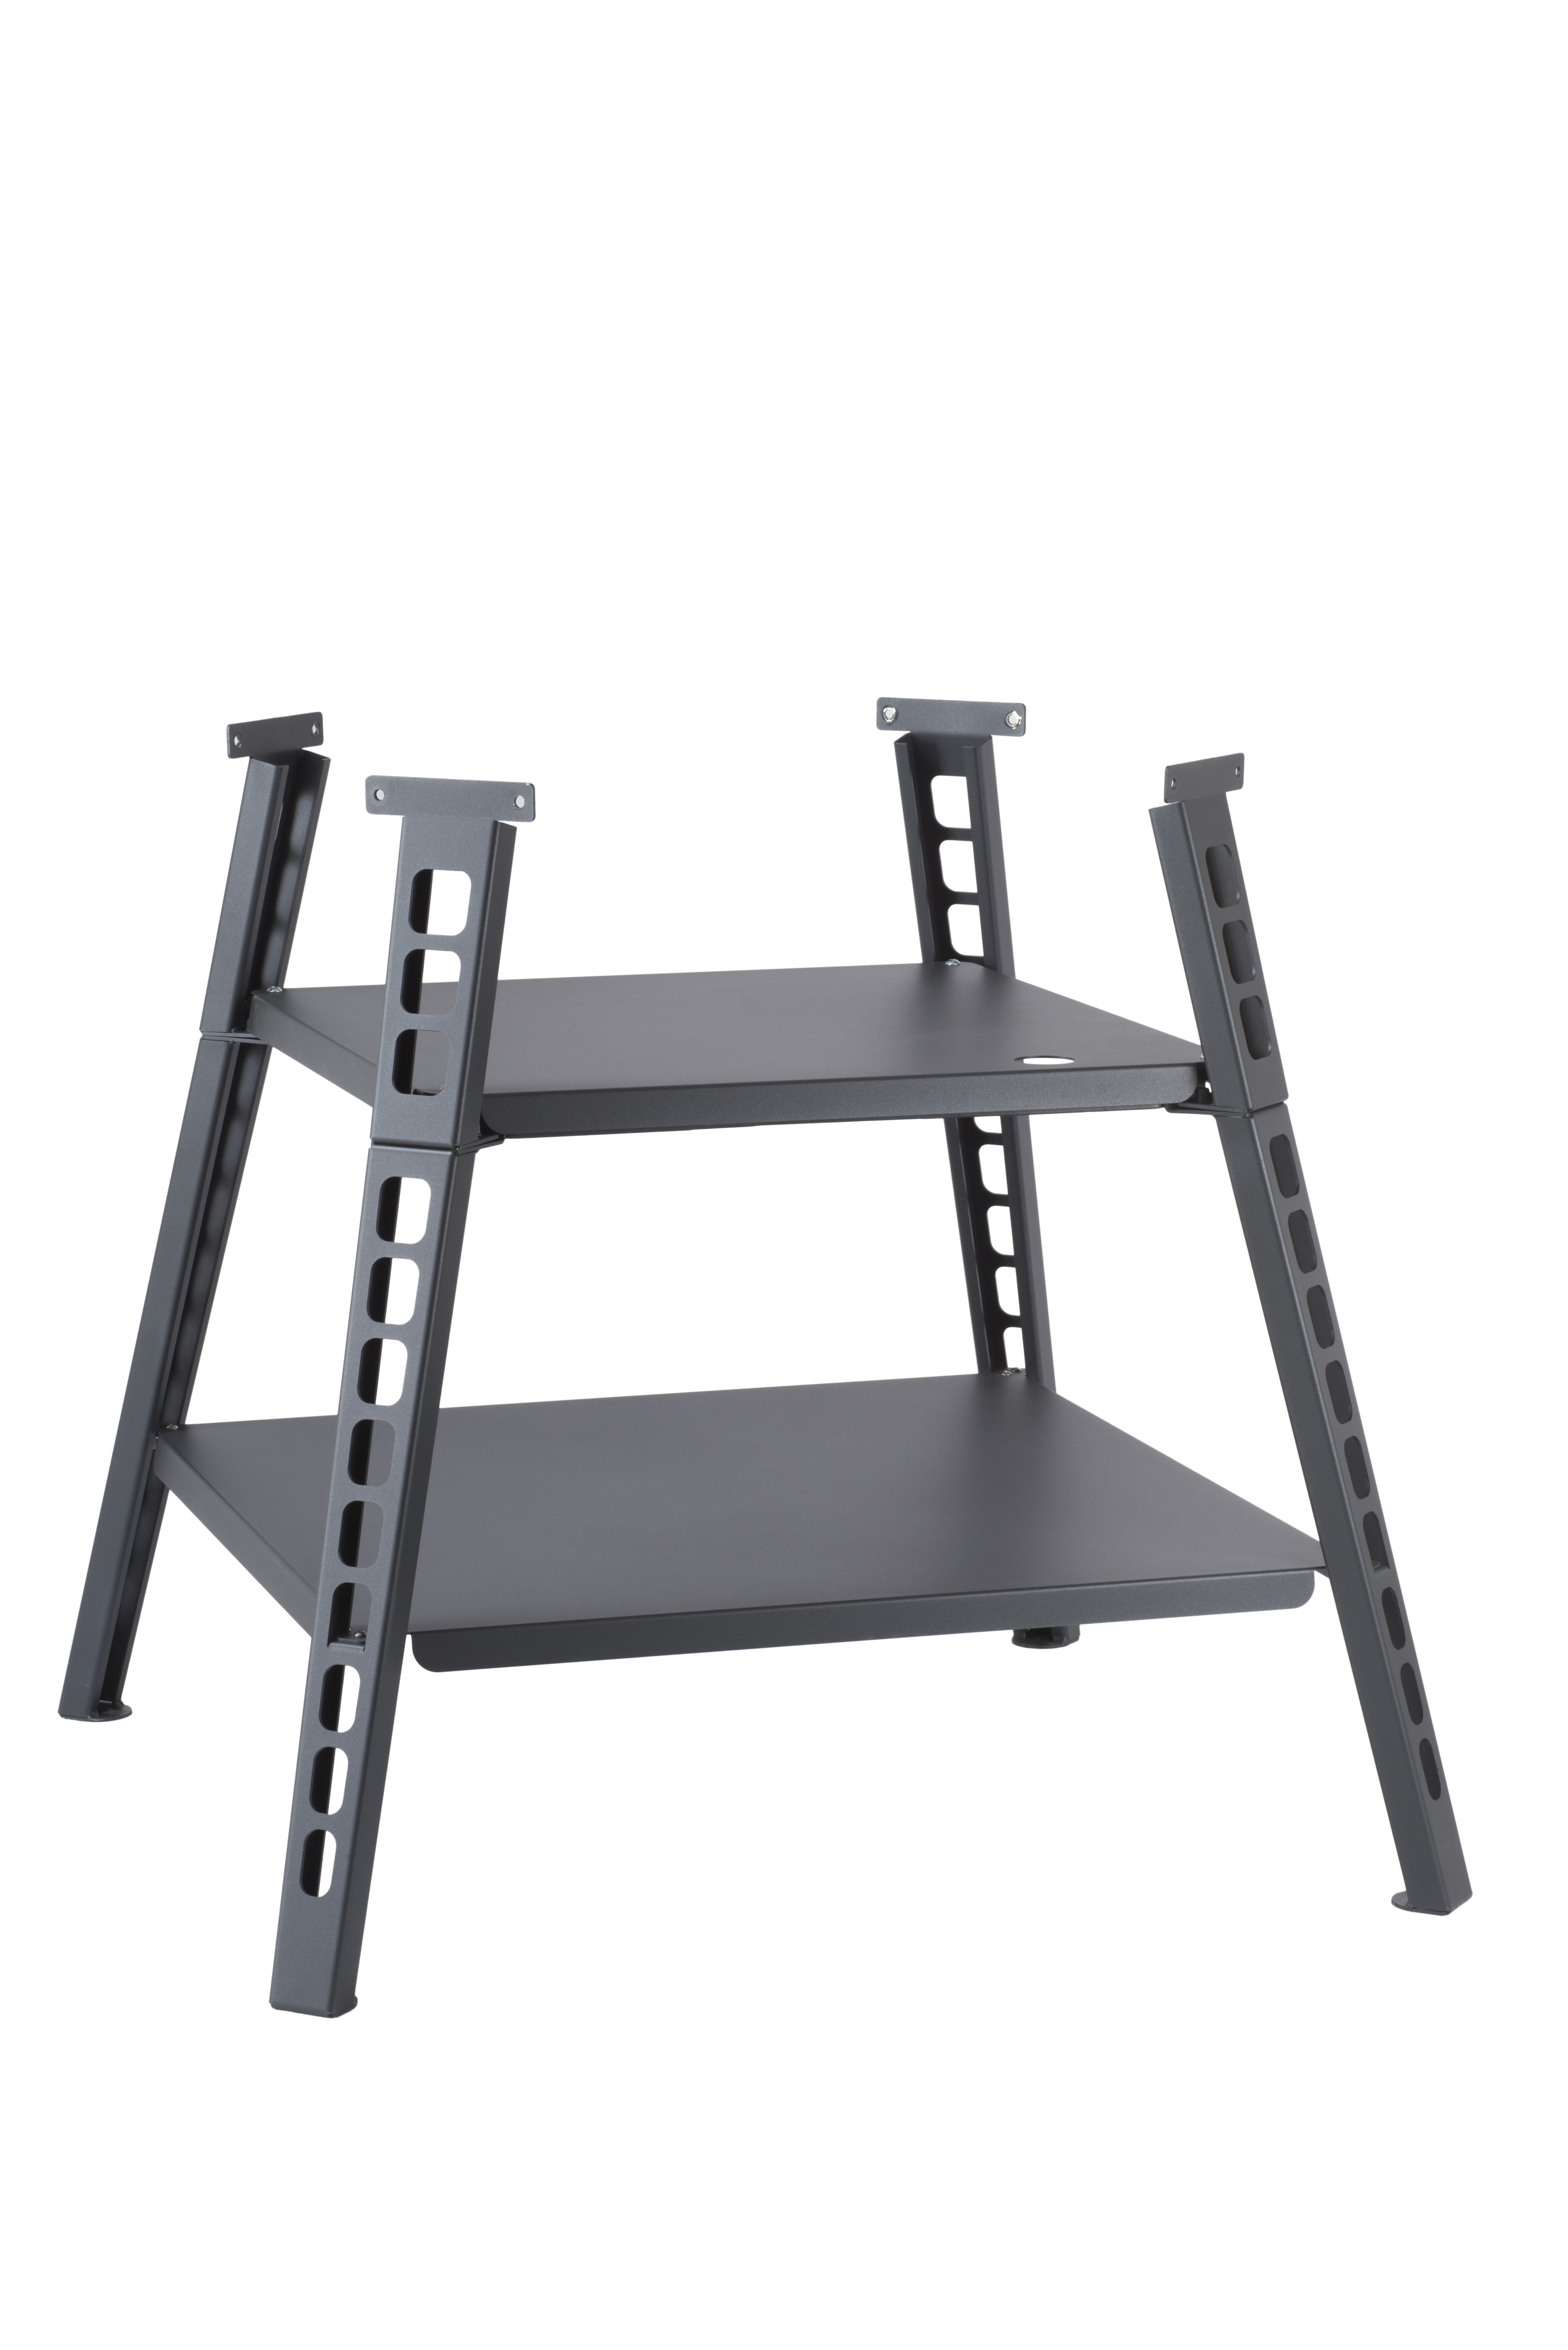 Fornino 75 – 2 part wheeled metal stand